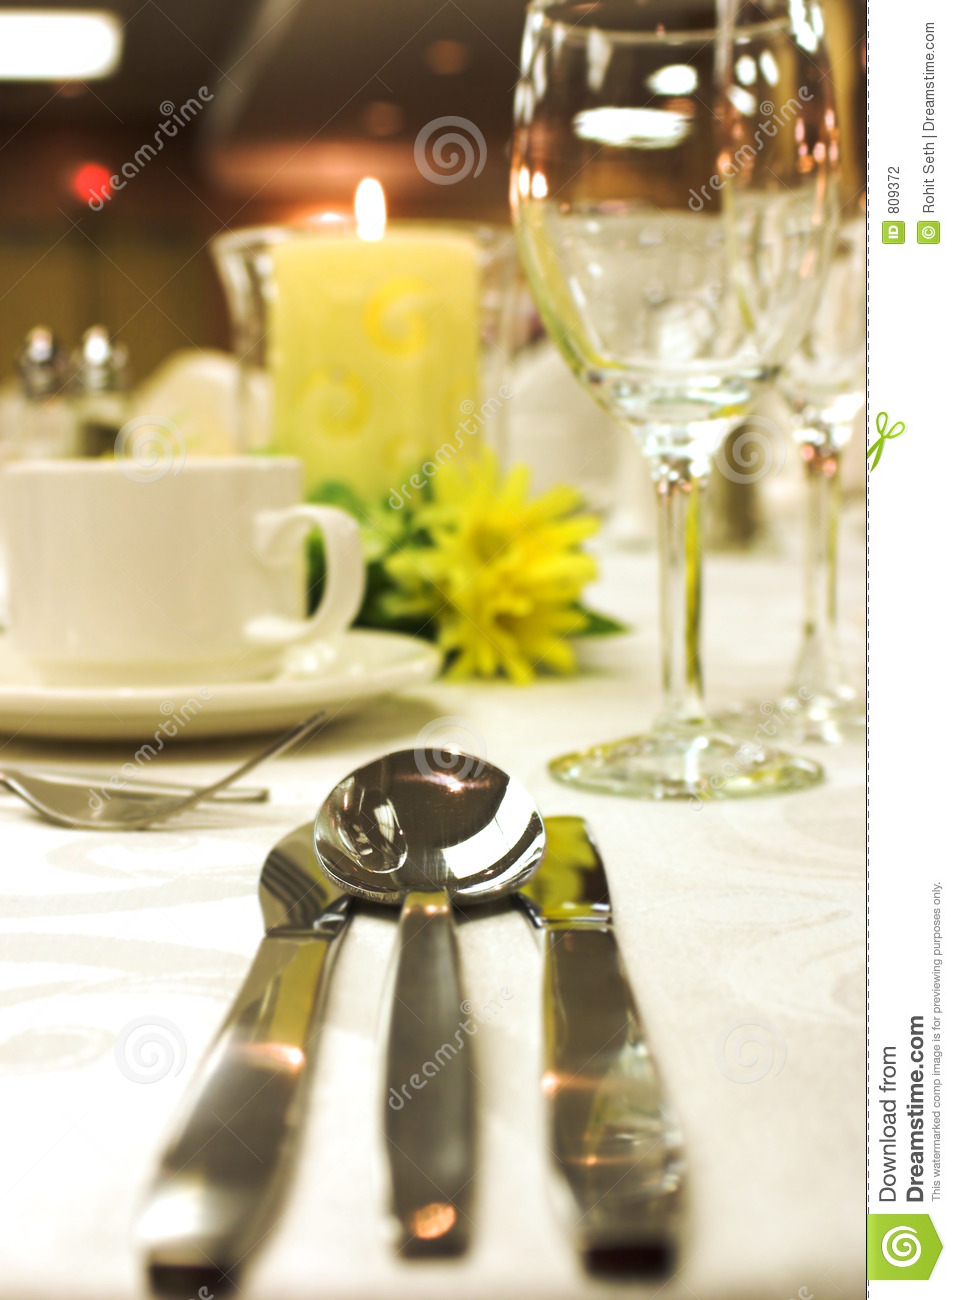 Formal Dinner Setting Stock Photo Image Of Cutlery